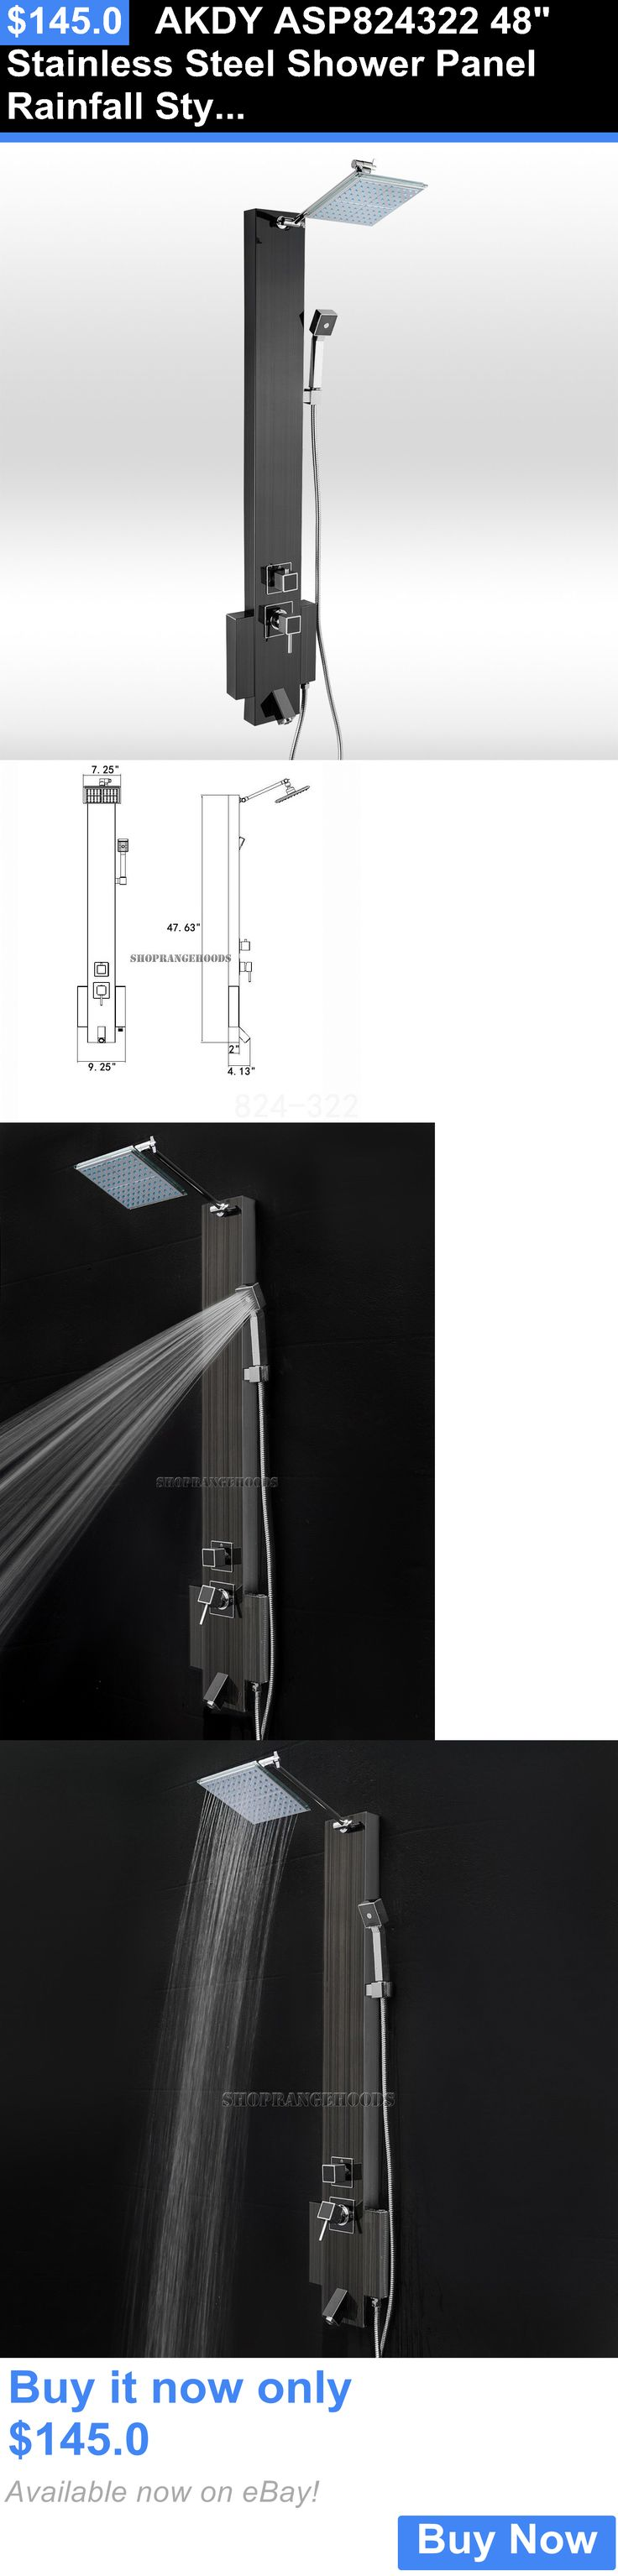 Massagers: Akdy Asp824322 48 Stainless Steel Shower Panel Rainfall Style Shower Tower BUY IT NOW ONLY: $145.0